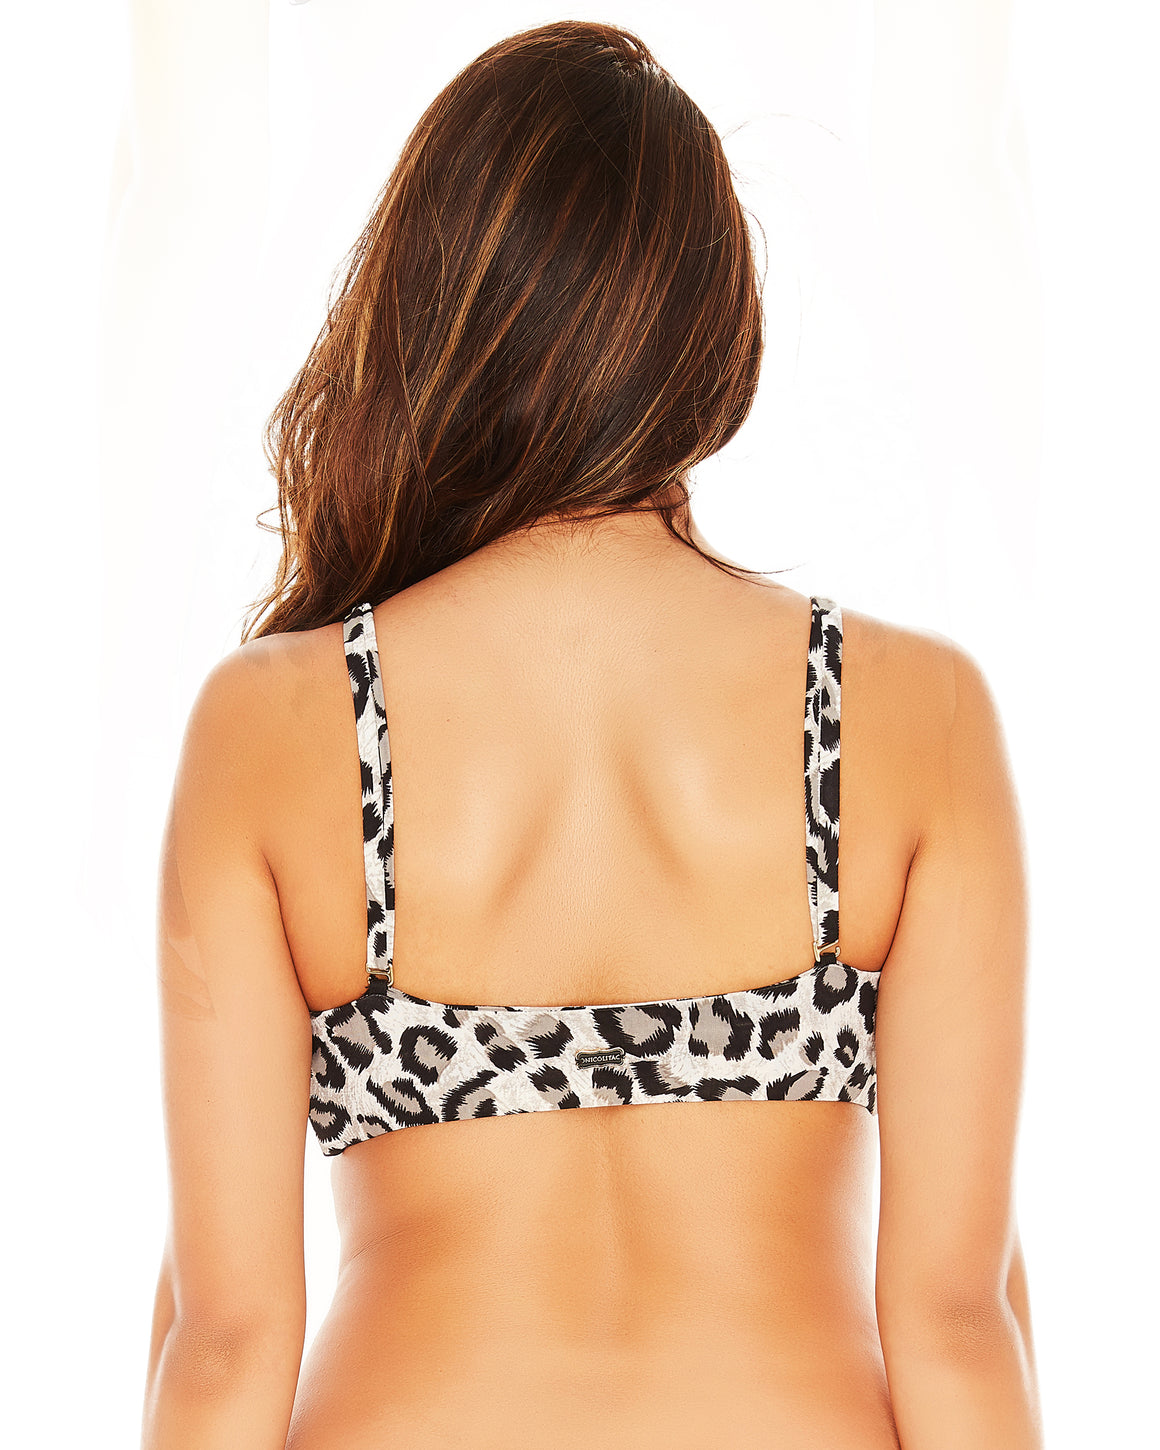 Isabella Top Bralette Swim Suit Swimwear Leopard Pool Bikini